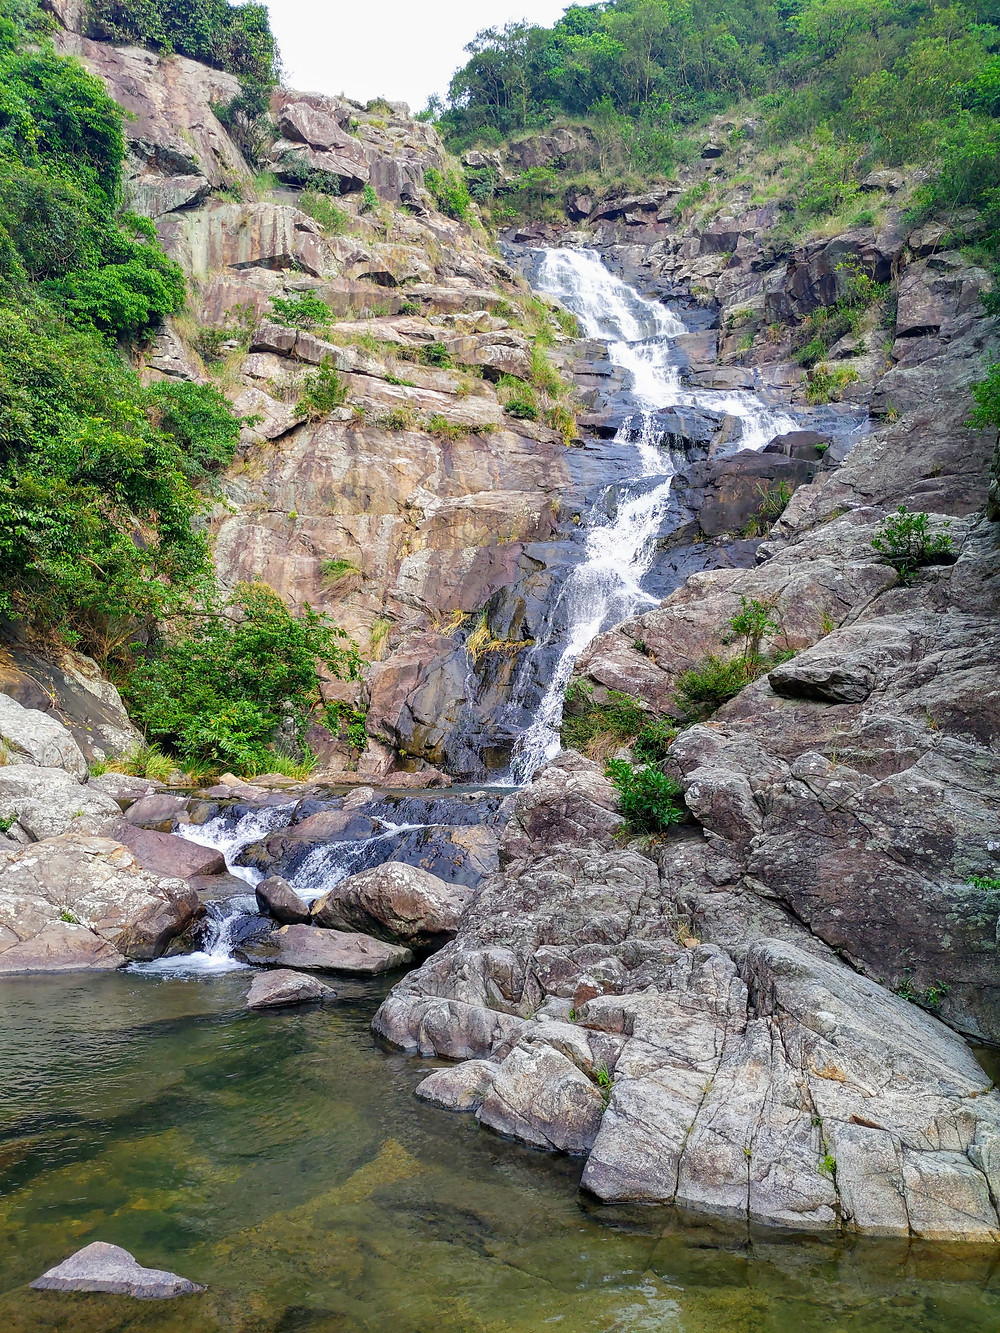 The Most Protected Waterfall in Lantau South